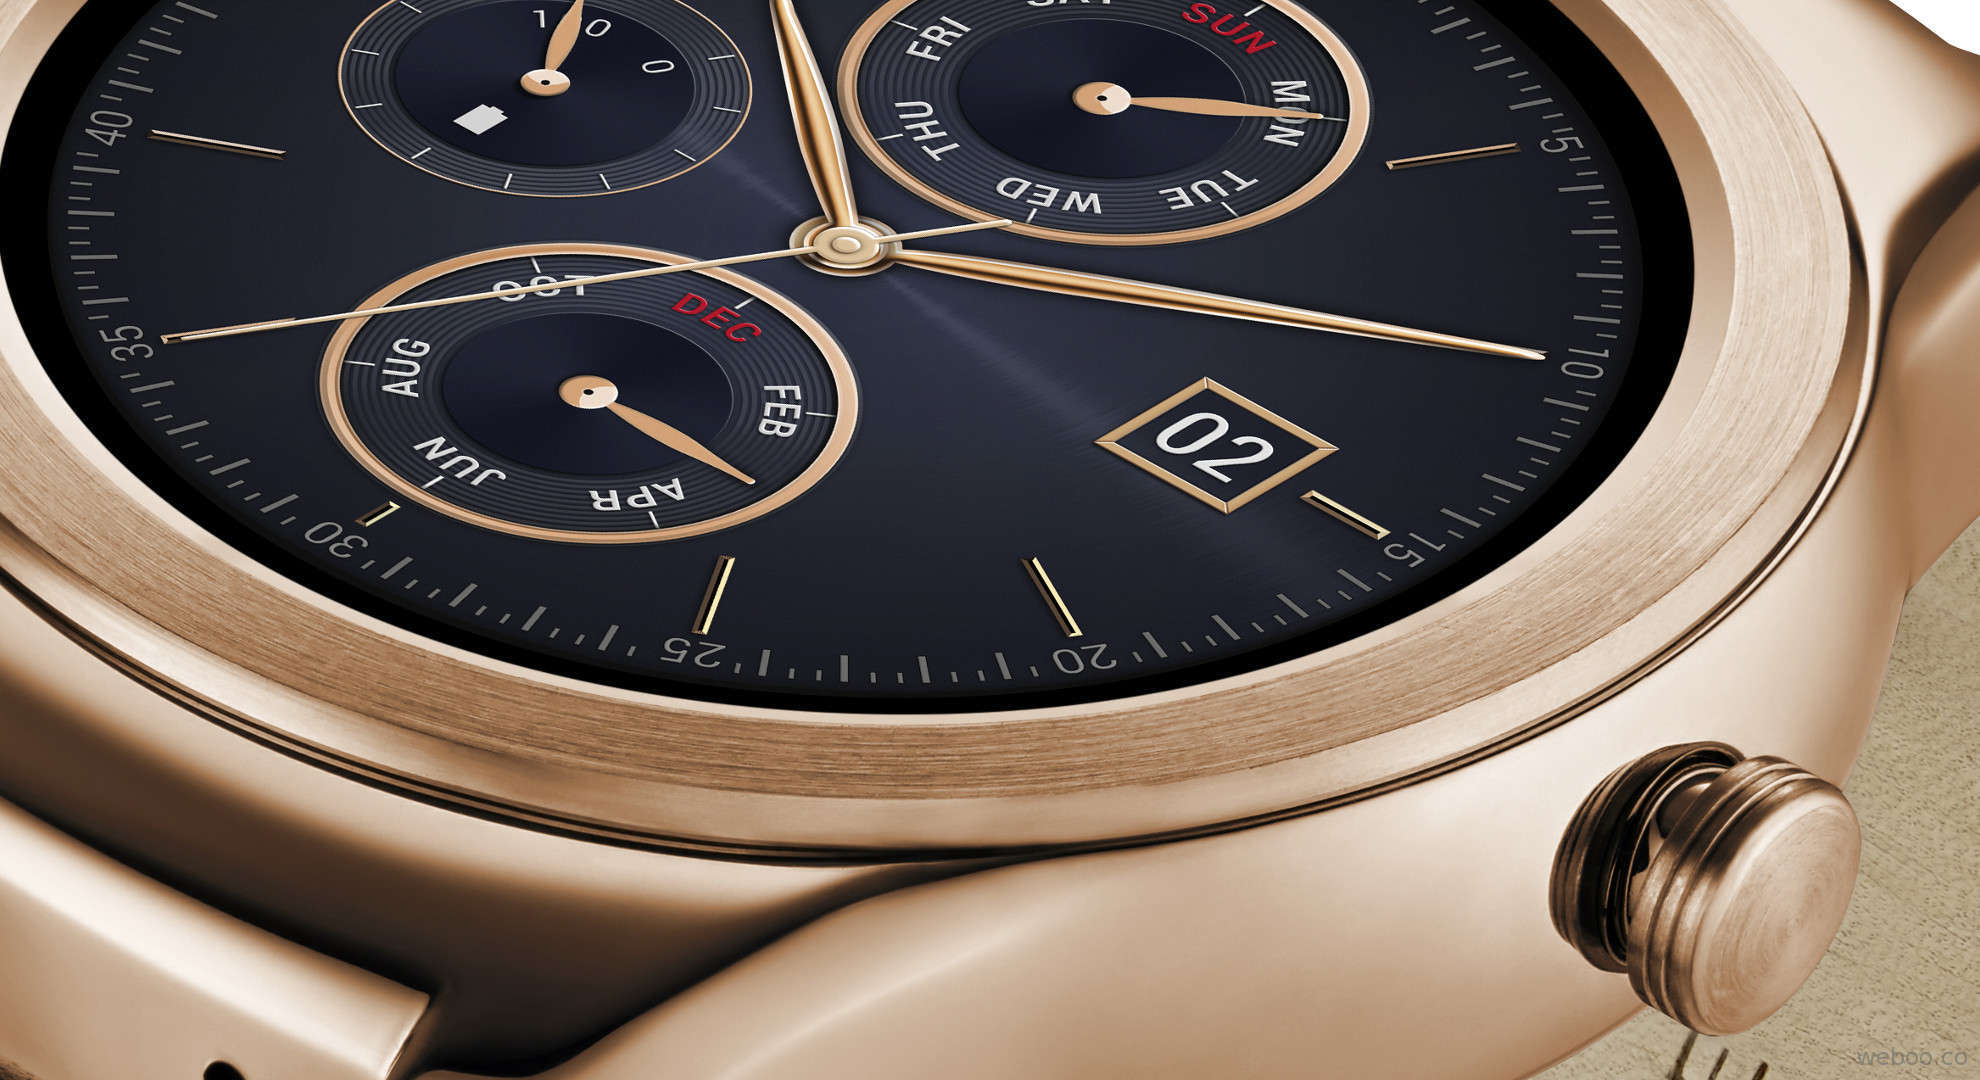 LG Watch Urbane, Sophisticated Finally a Wearable for Urbanites!